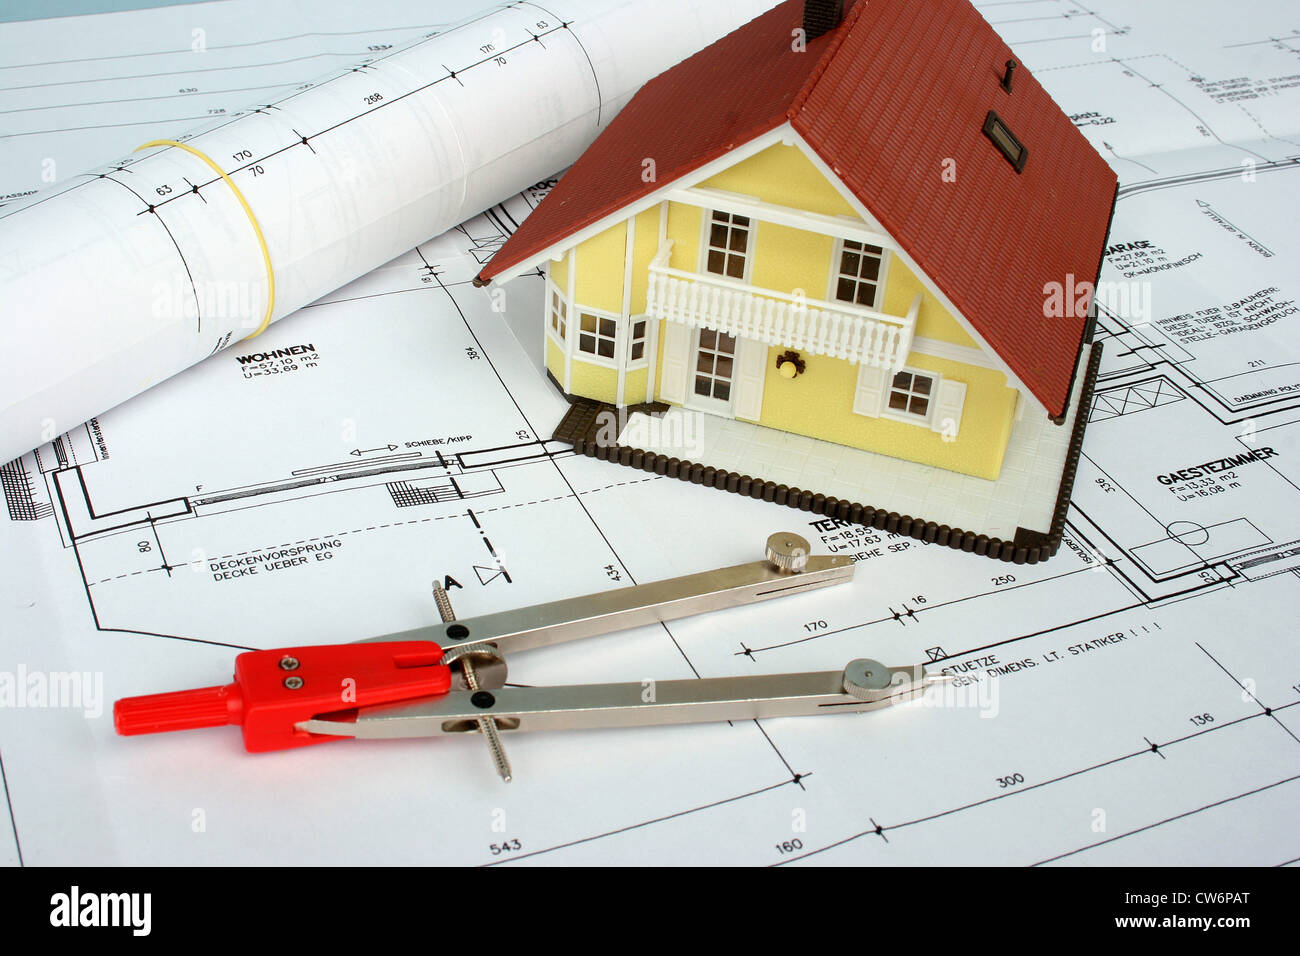 dividers and  model of a house lying on a plan - Stock Image